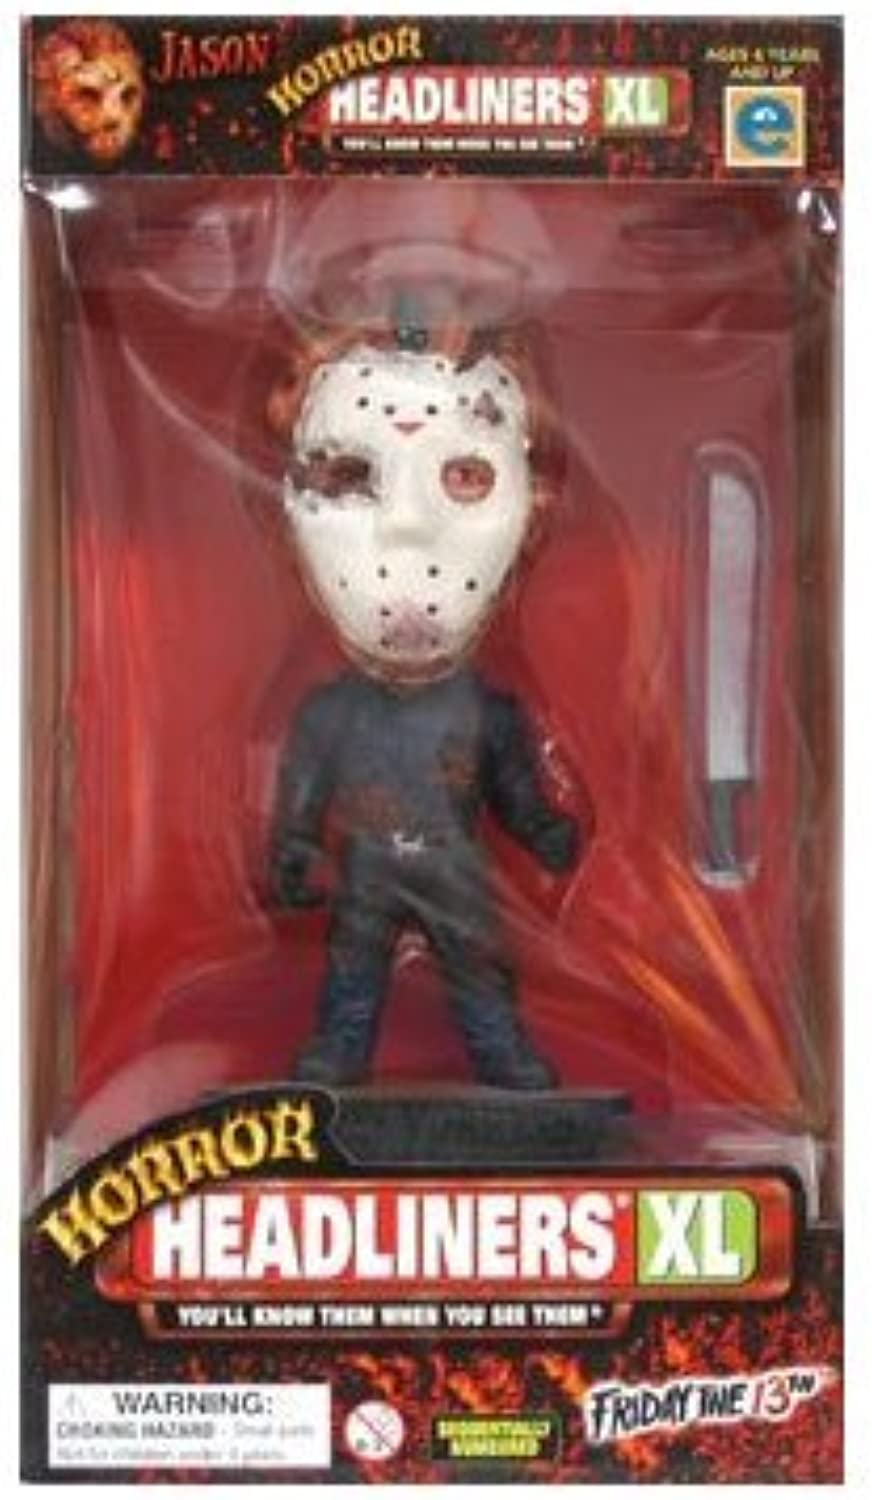 Friday the 13th  Jason  Headliners XL